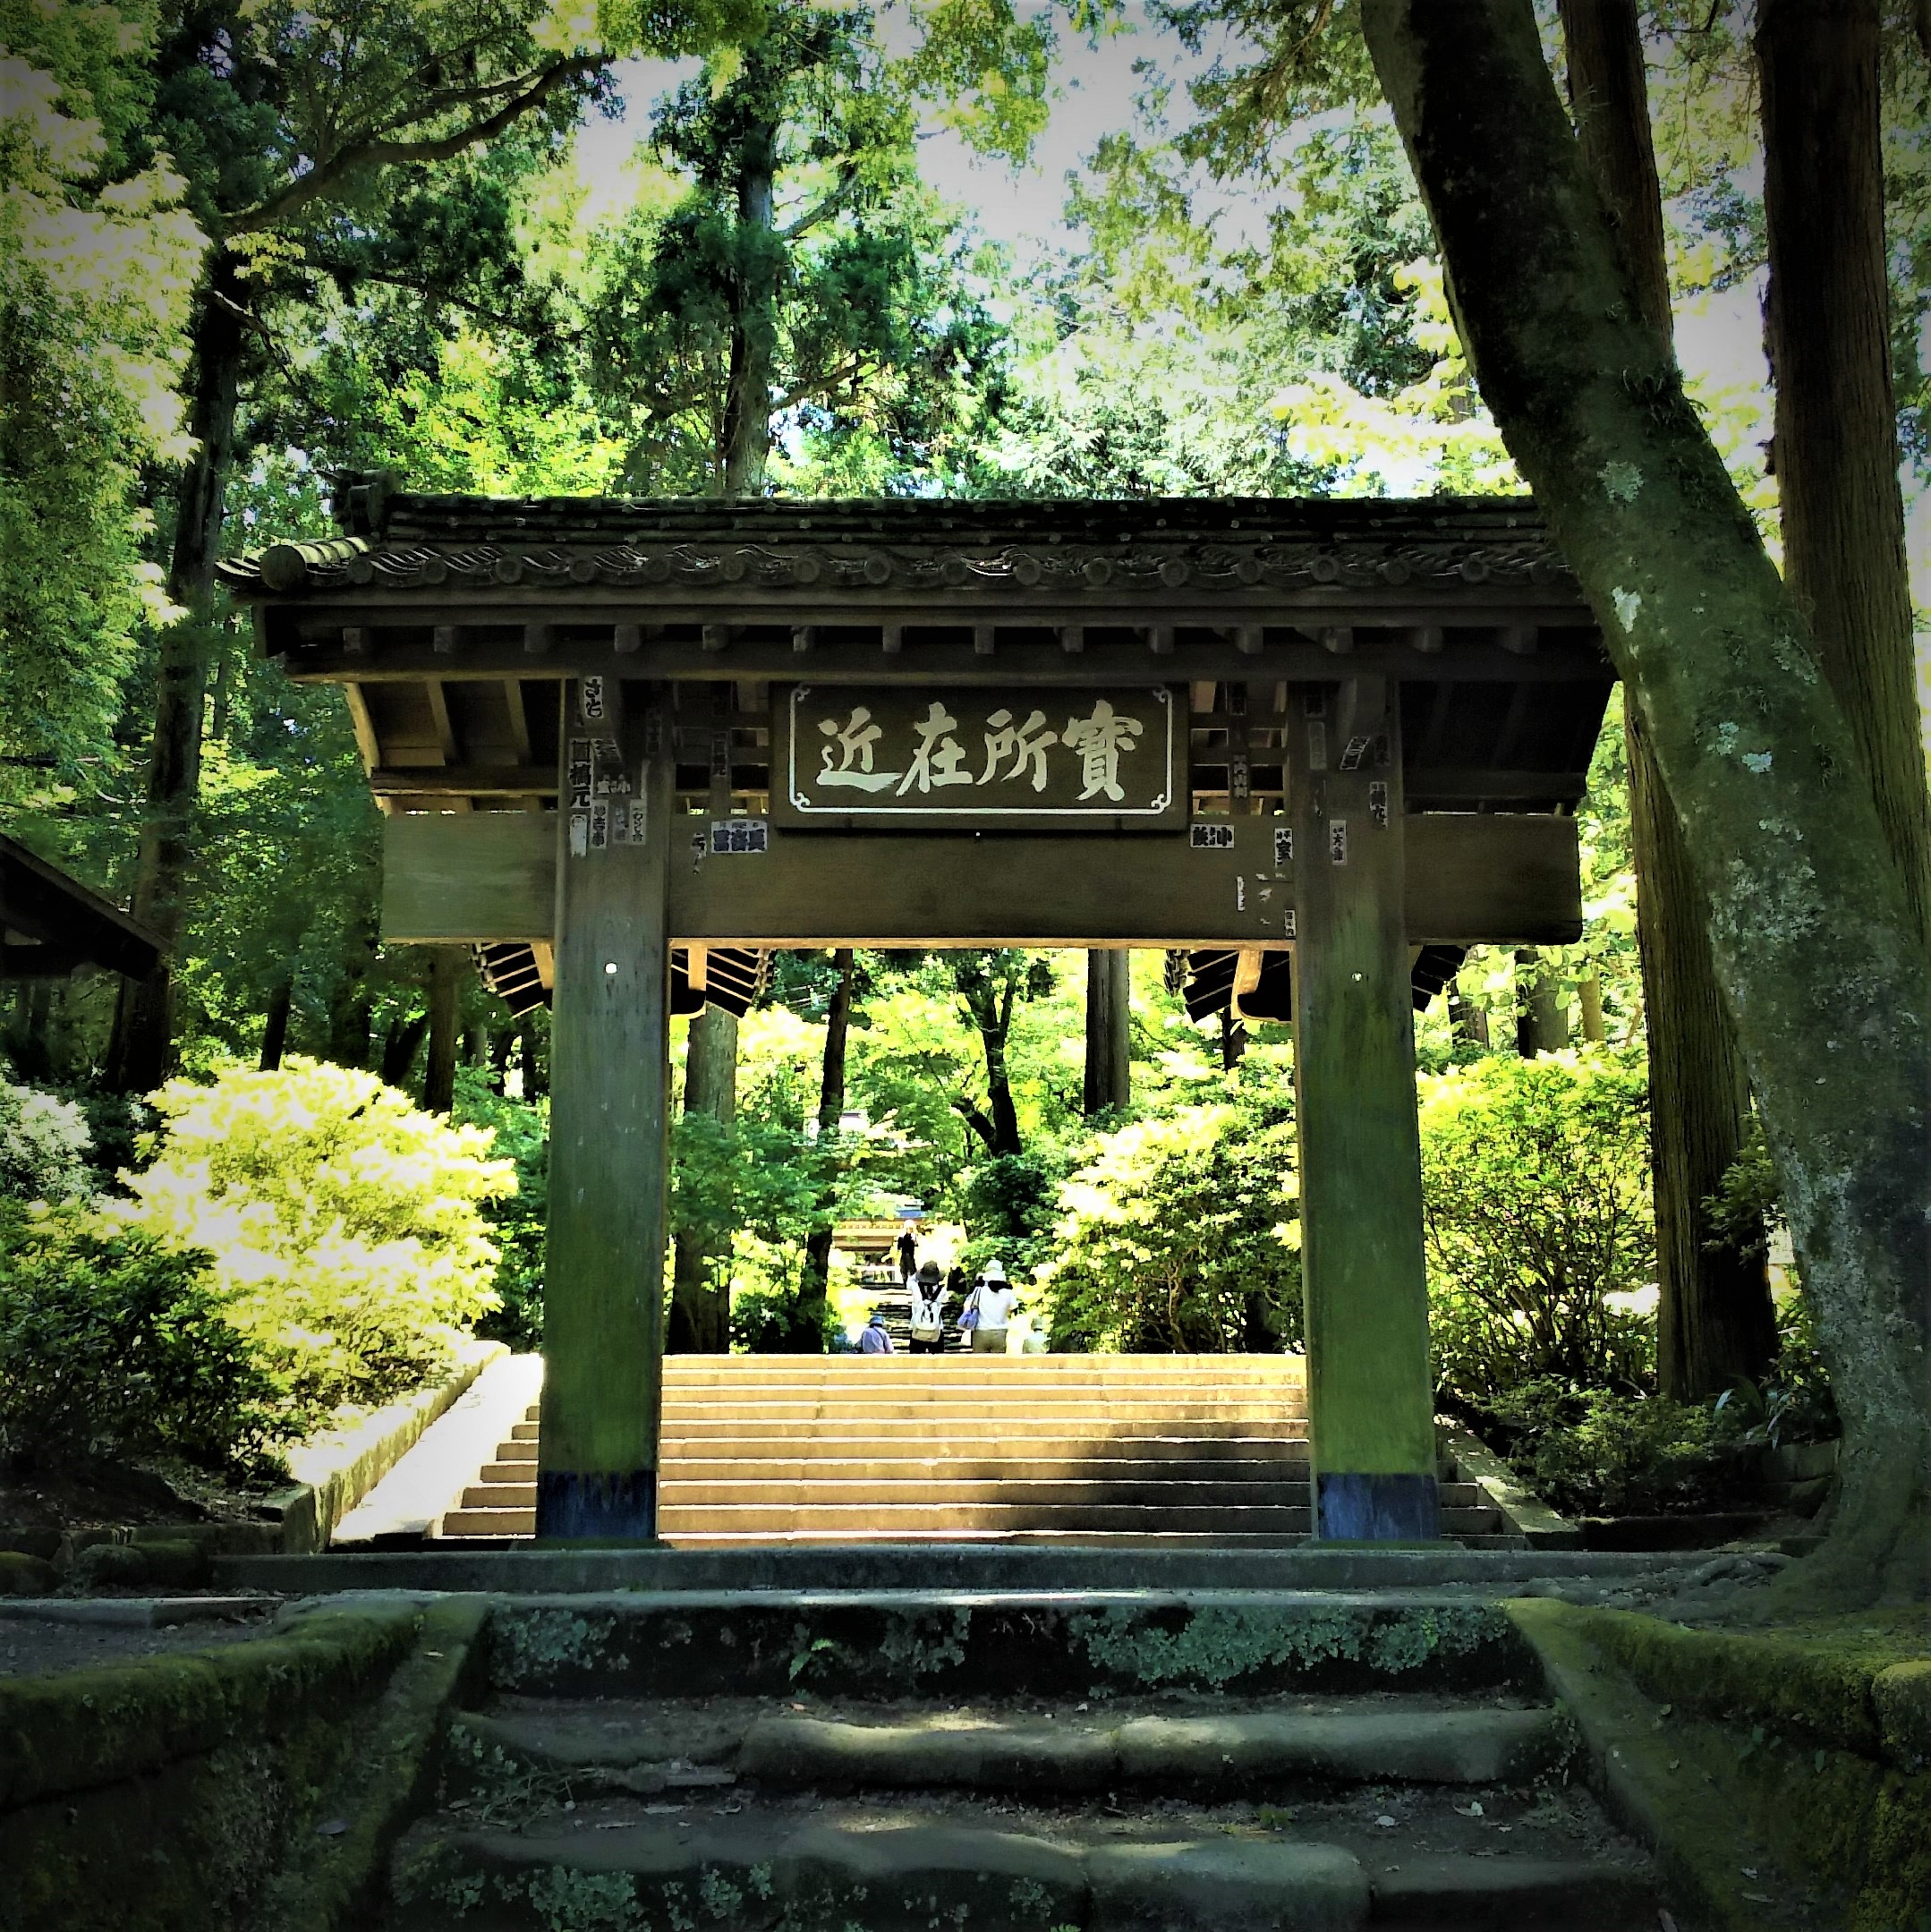 Entrance to Jhochiji temple